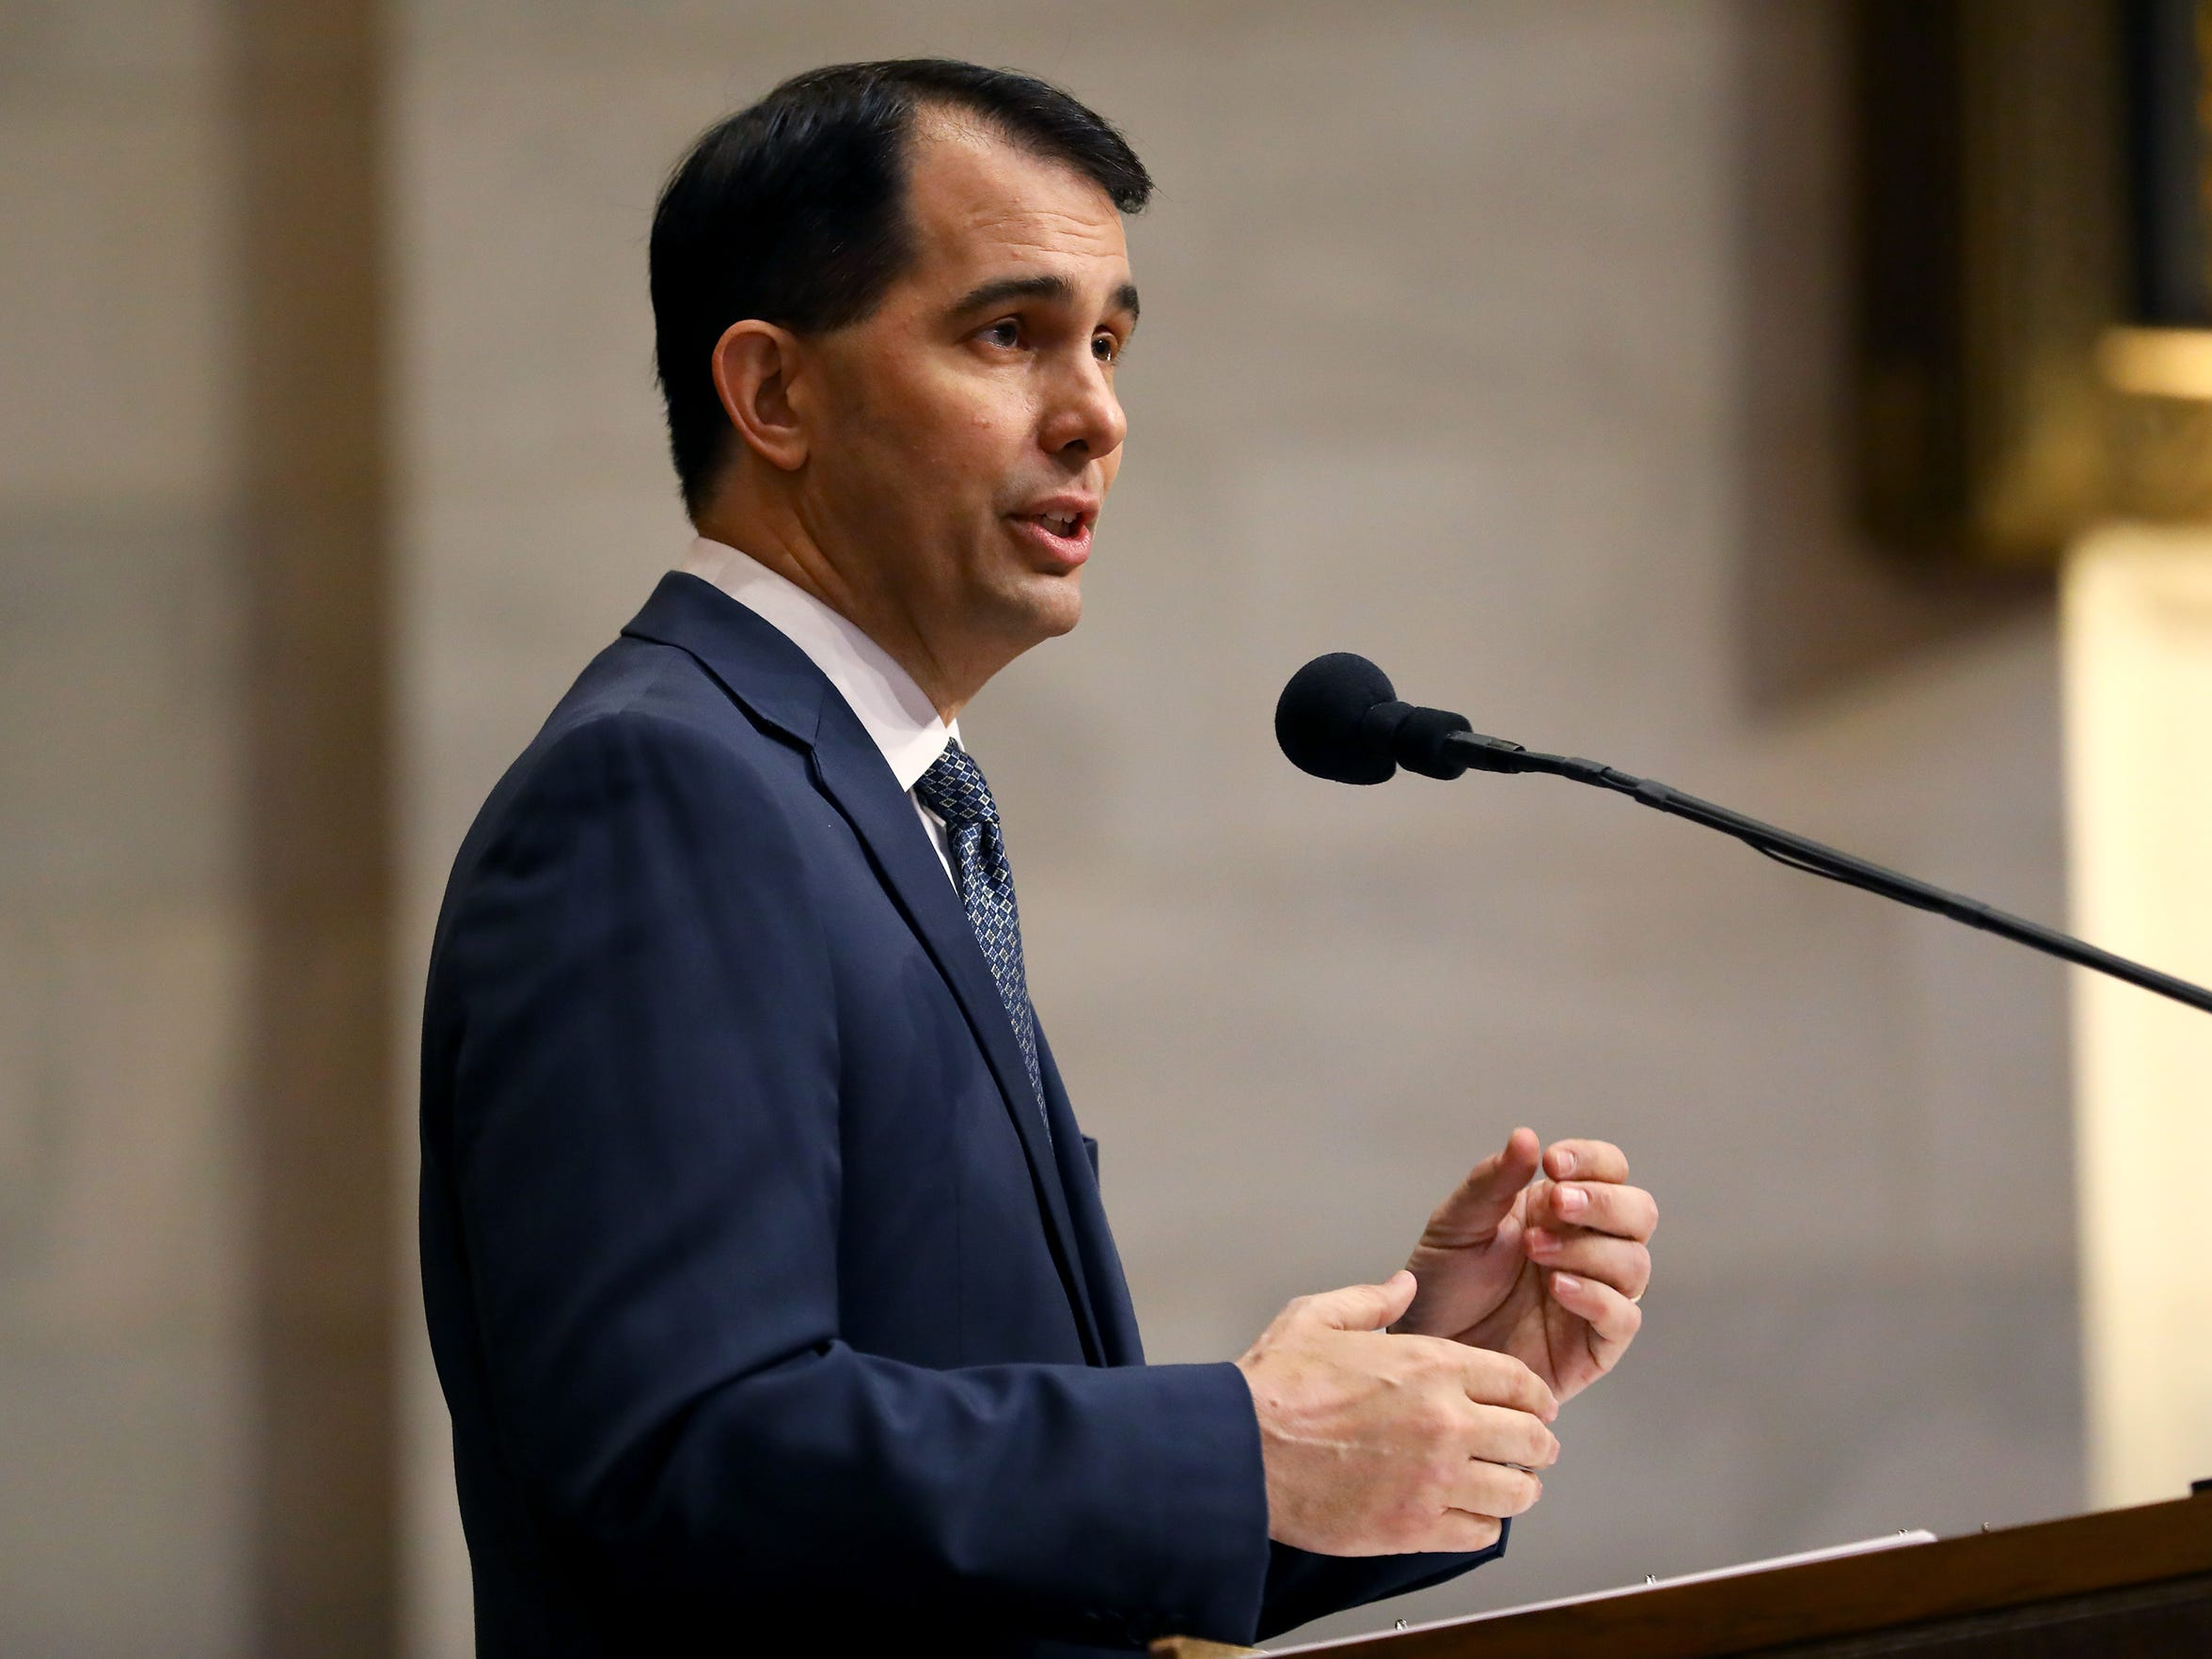 Gov. Scott Walker has declared war on waste, fraud and abuse in state government, saving taxpayers an estimated $150 million in Medicaid and FoodShare alone. But a Wisconsin Center for Investigative Journalism investigation shows that some tools for fighting waste, fraud and abuse in state spending have been weakened in recent years by actions of political leaders and state Supreme Court justices.